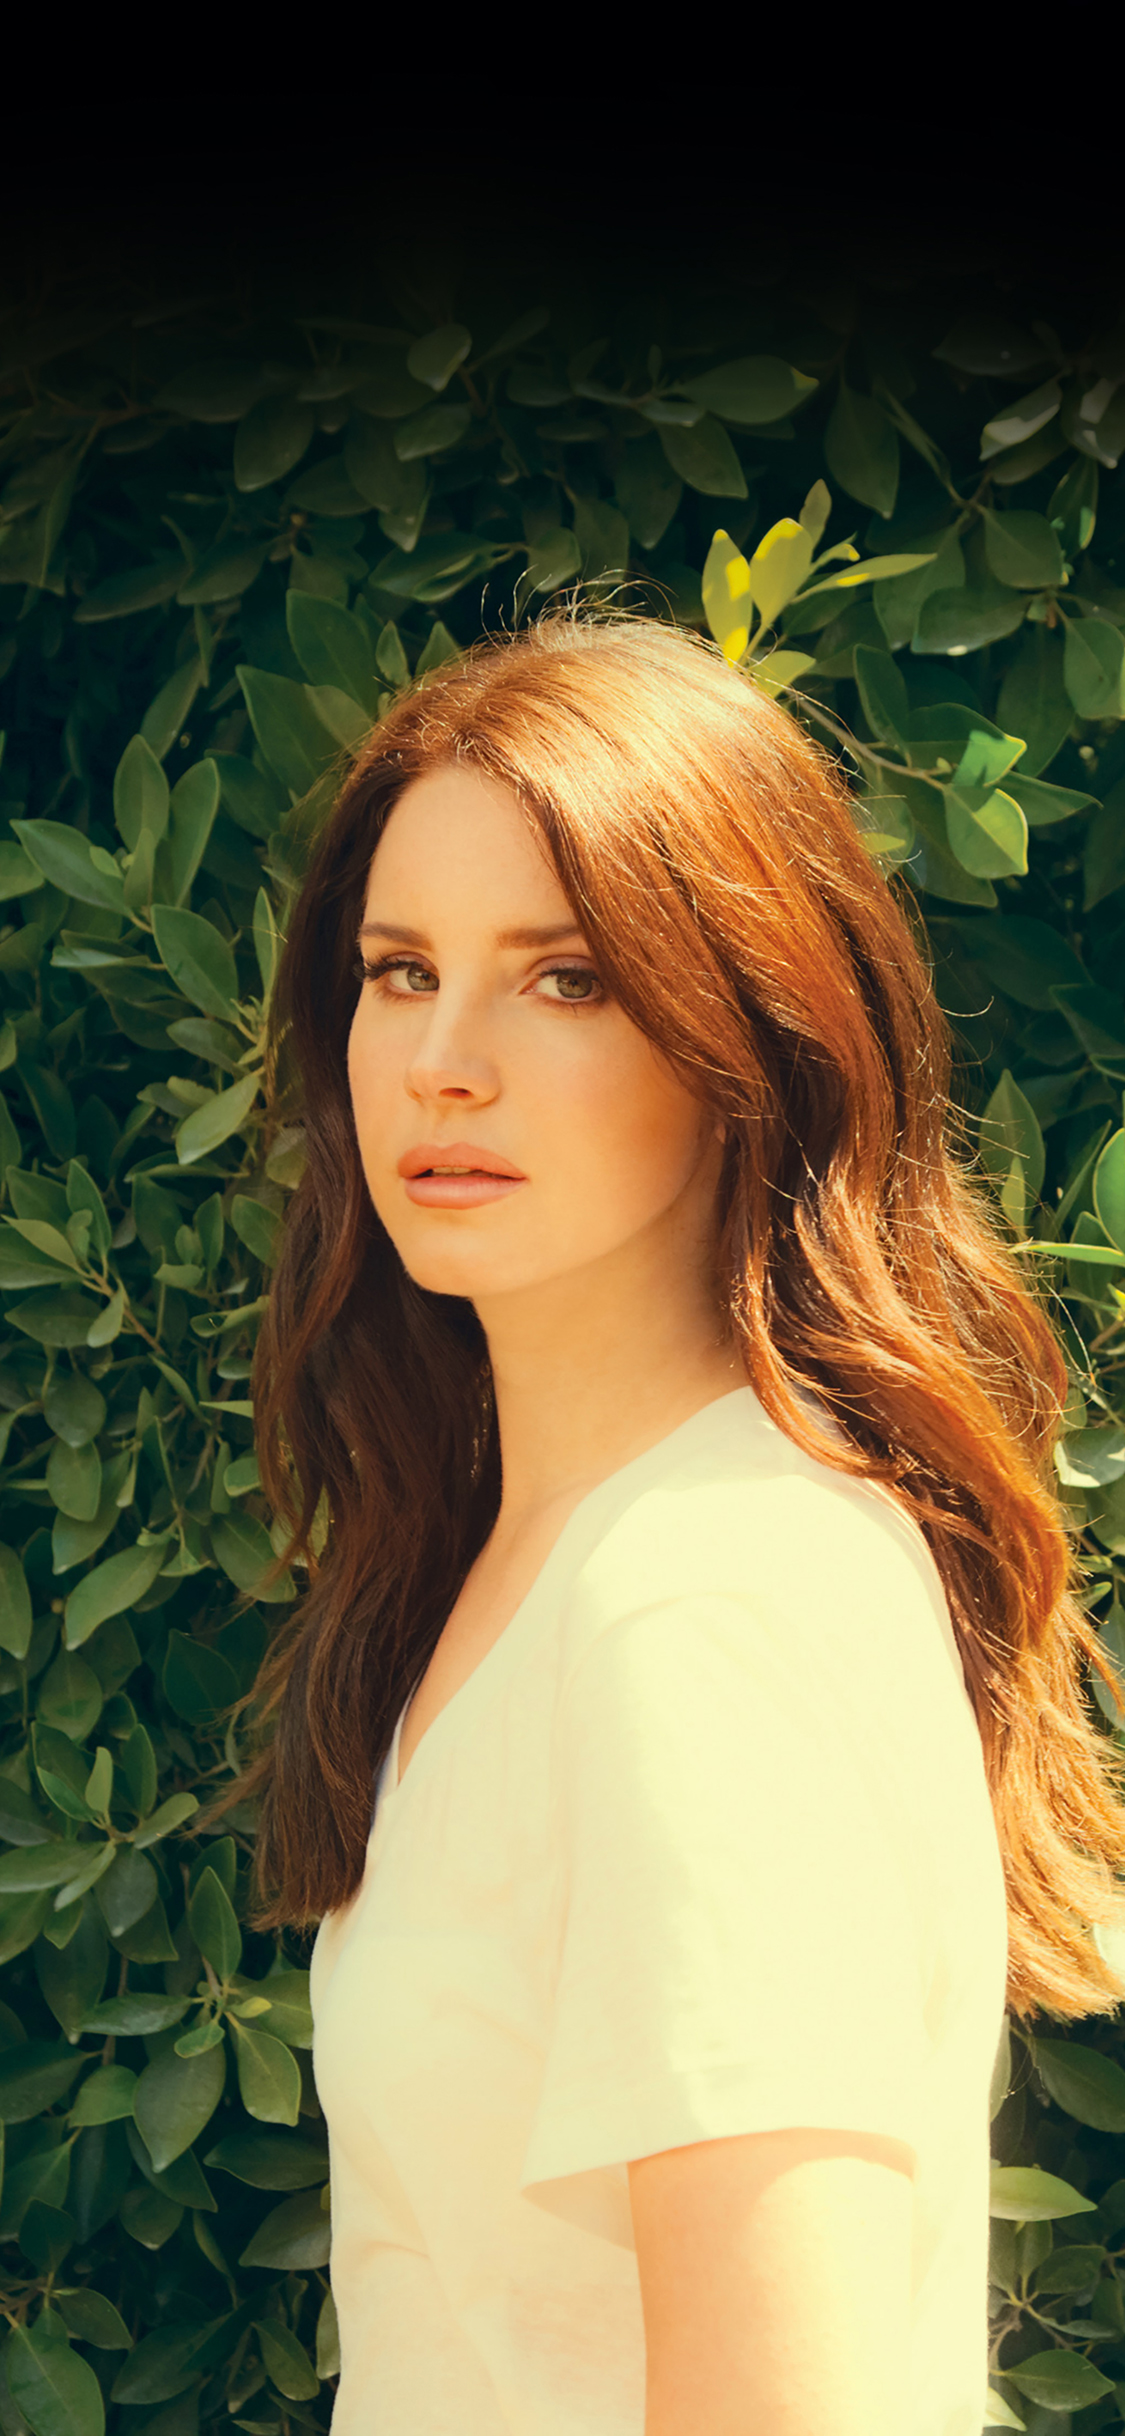 Hd60 Lana Del Rey Music Singer Celebrity Papers Co